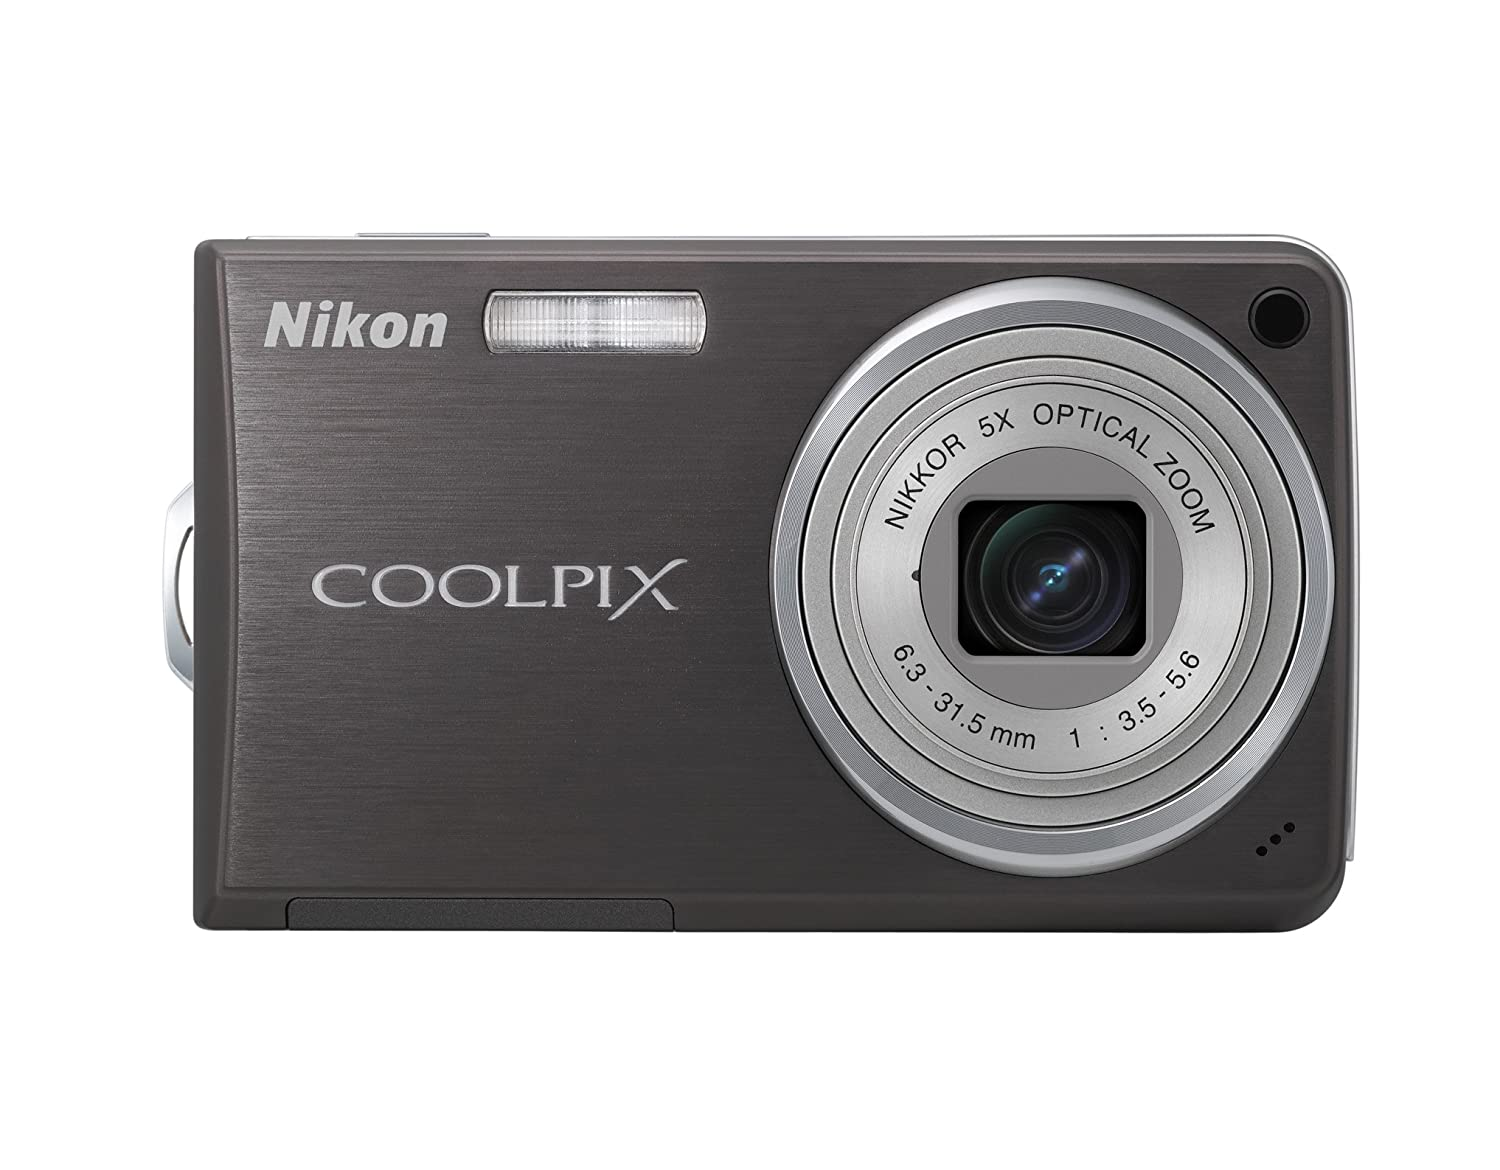 Amazon.com : Nikon Coolpix S550 10 MP Digital Camera with 5x Optical Zoom  (Graphite Black) : Point And Shoot Digital Cameras : Camera & Photo